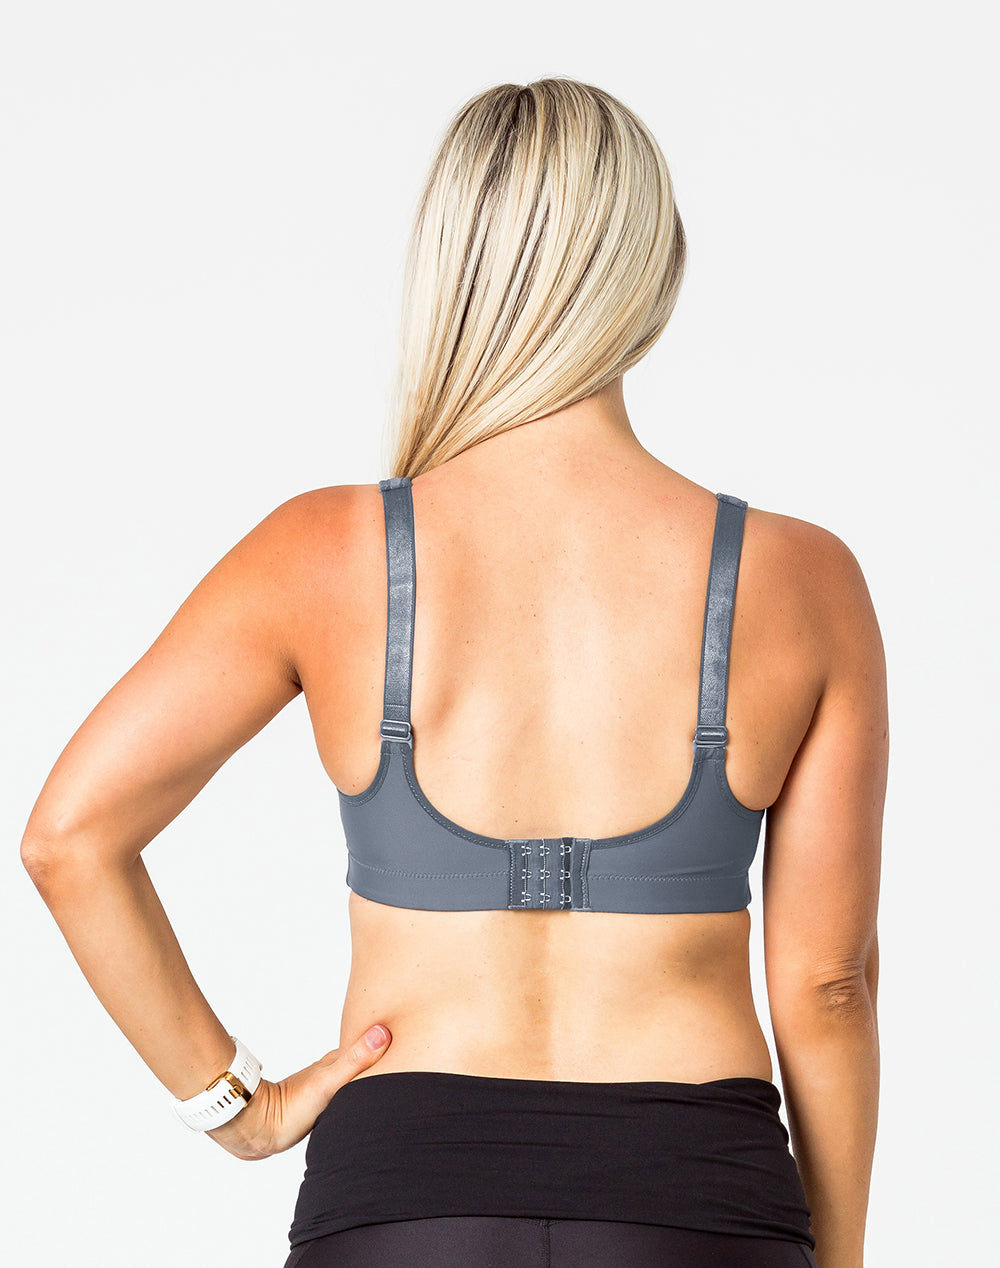 back view of a woman wearing a cute charcoal nursing bra